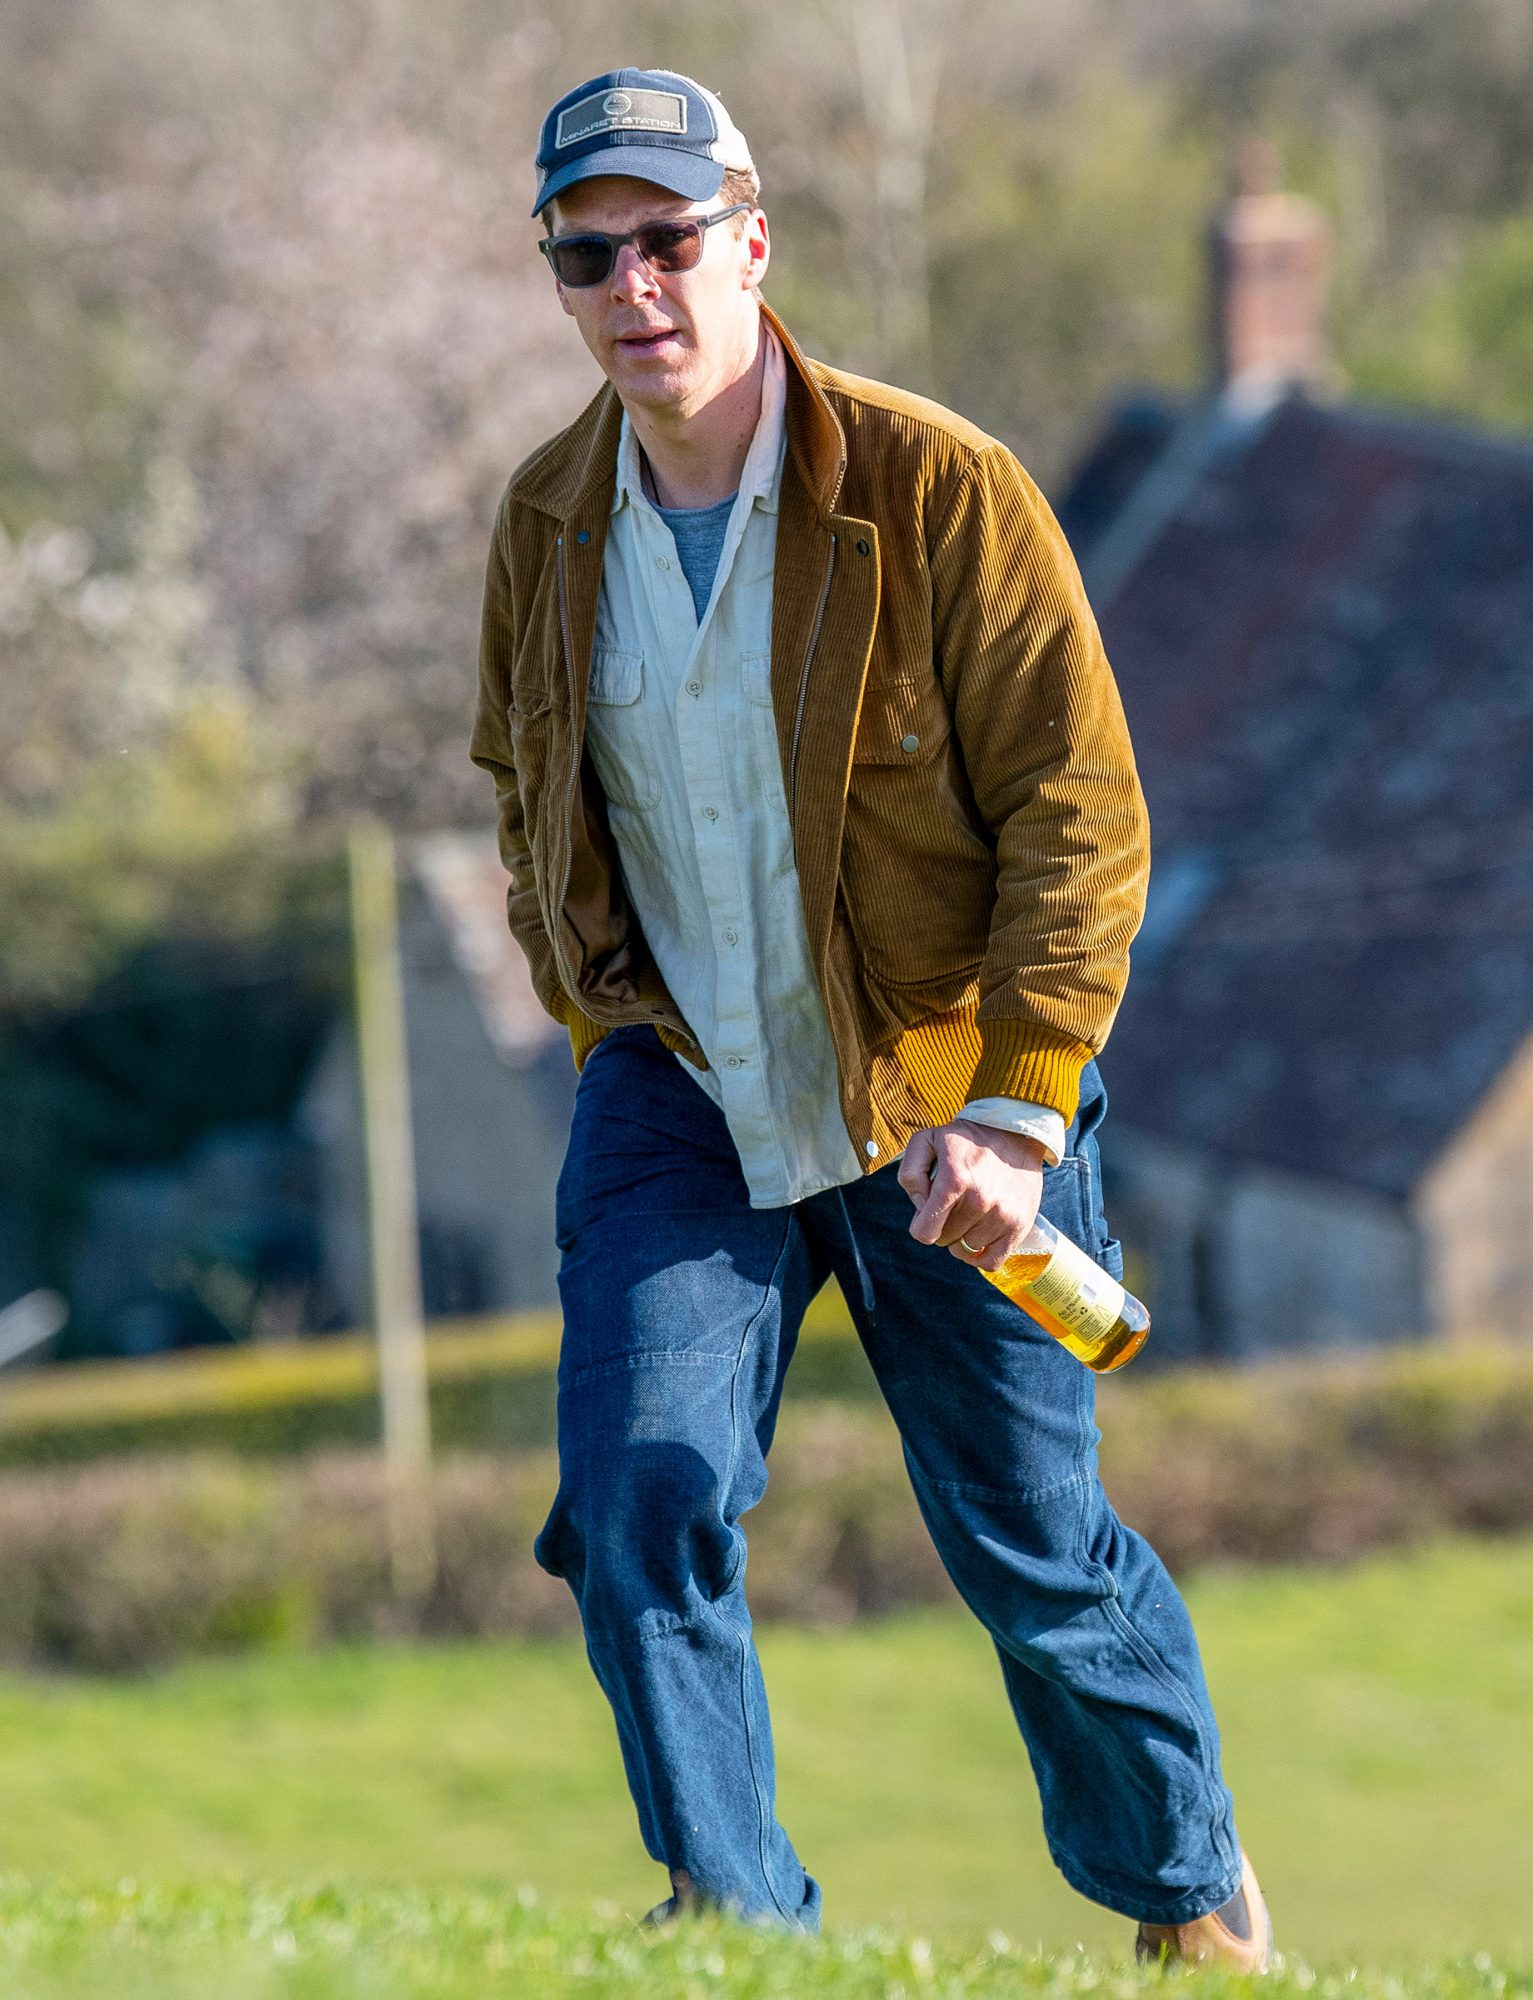 Benedict Cumberbatch Enjoys A Bottle Of Cider On Burrow Hill In Somerset